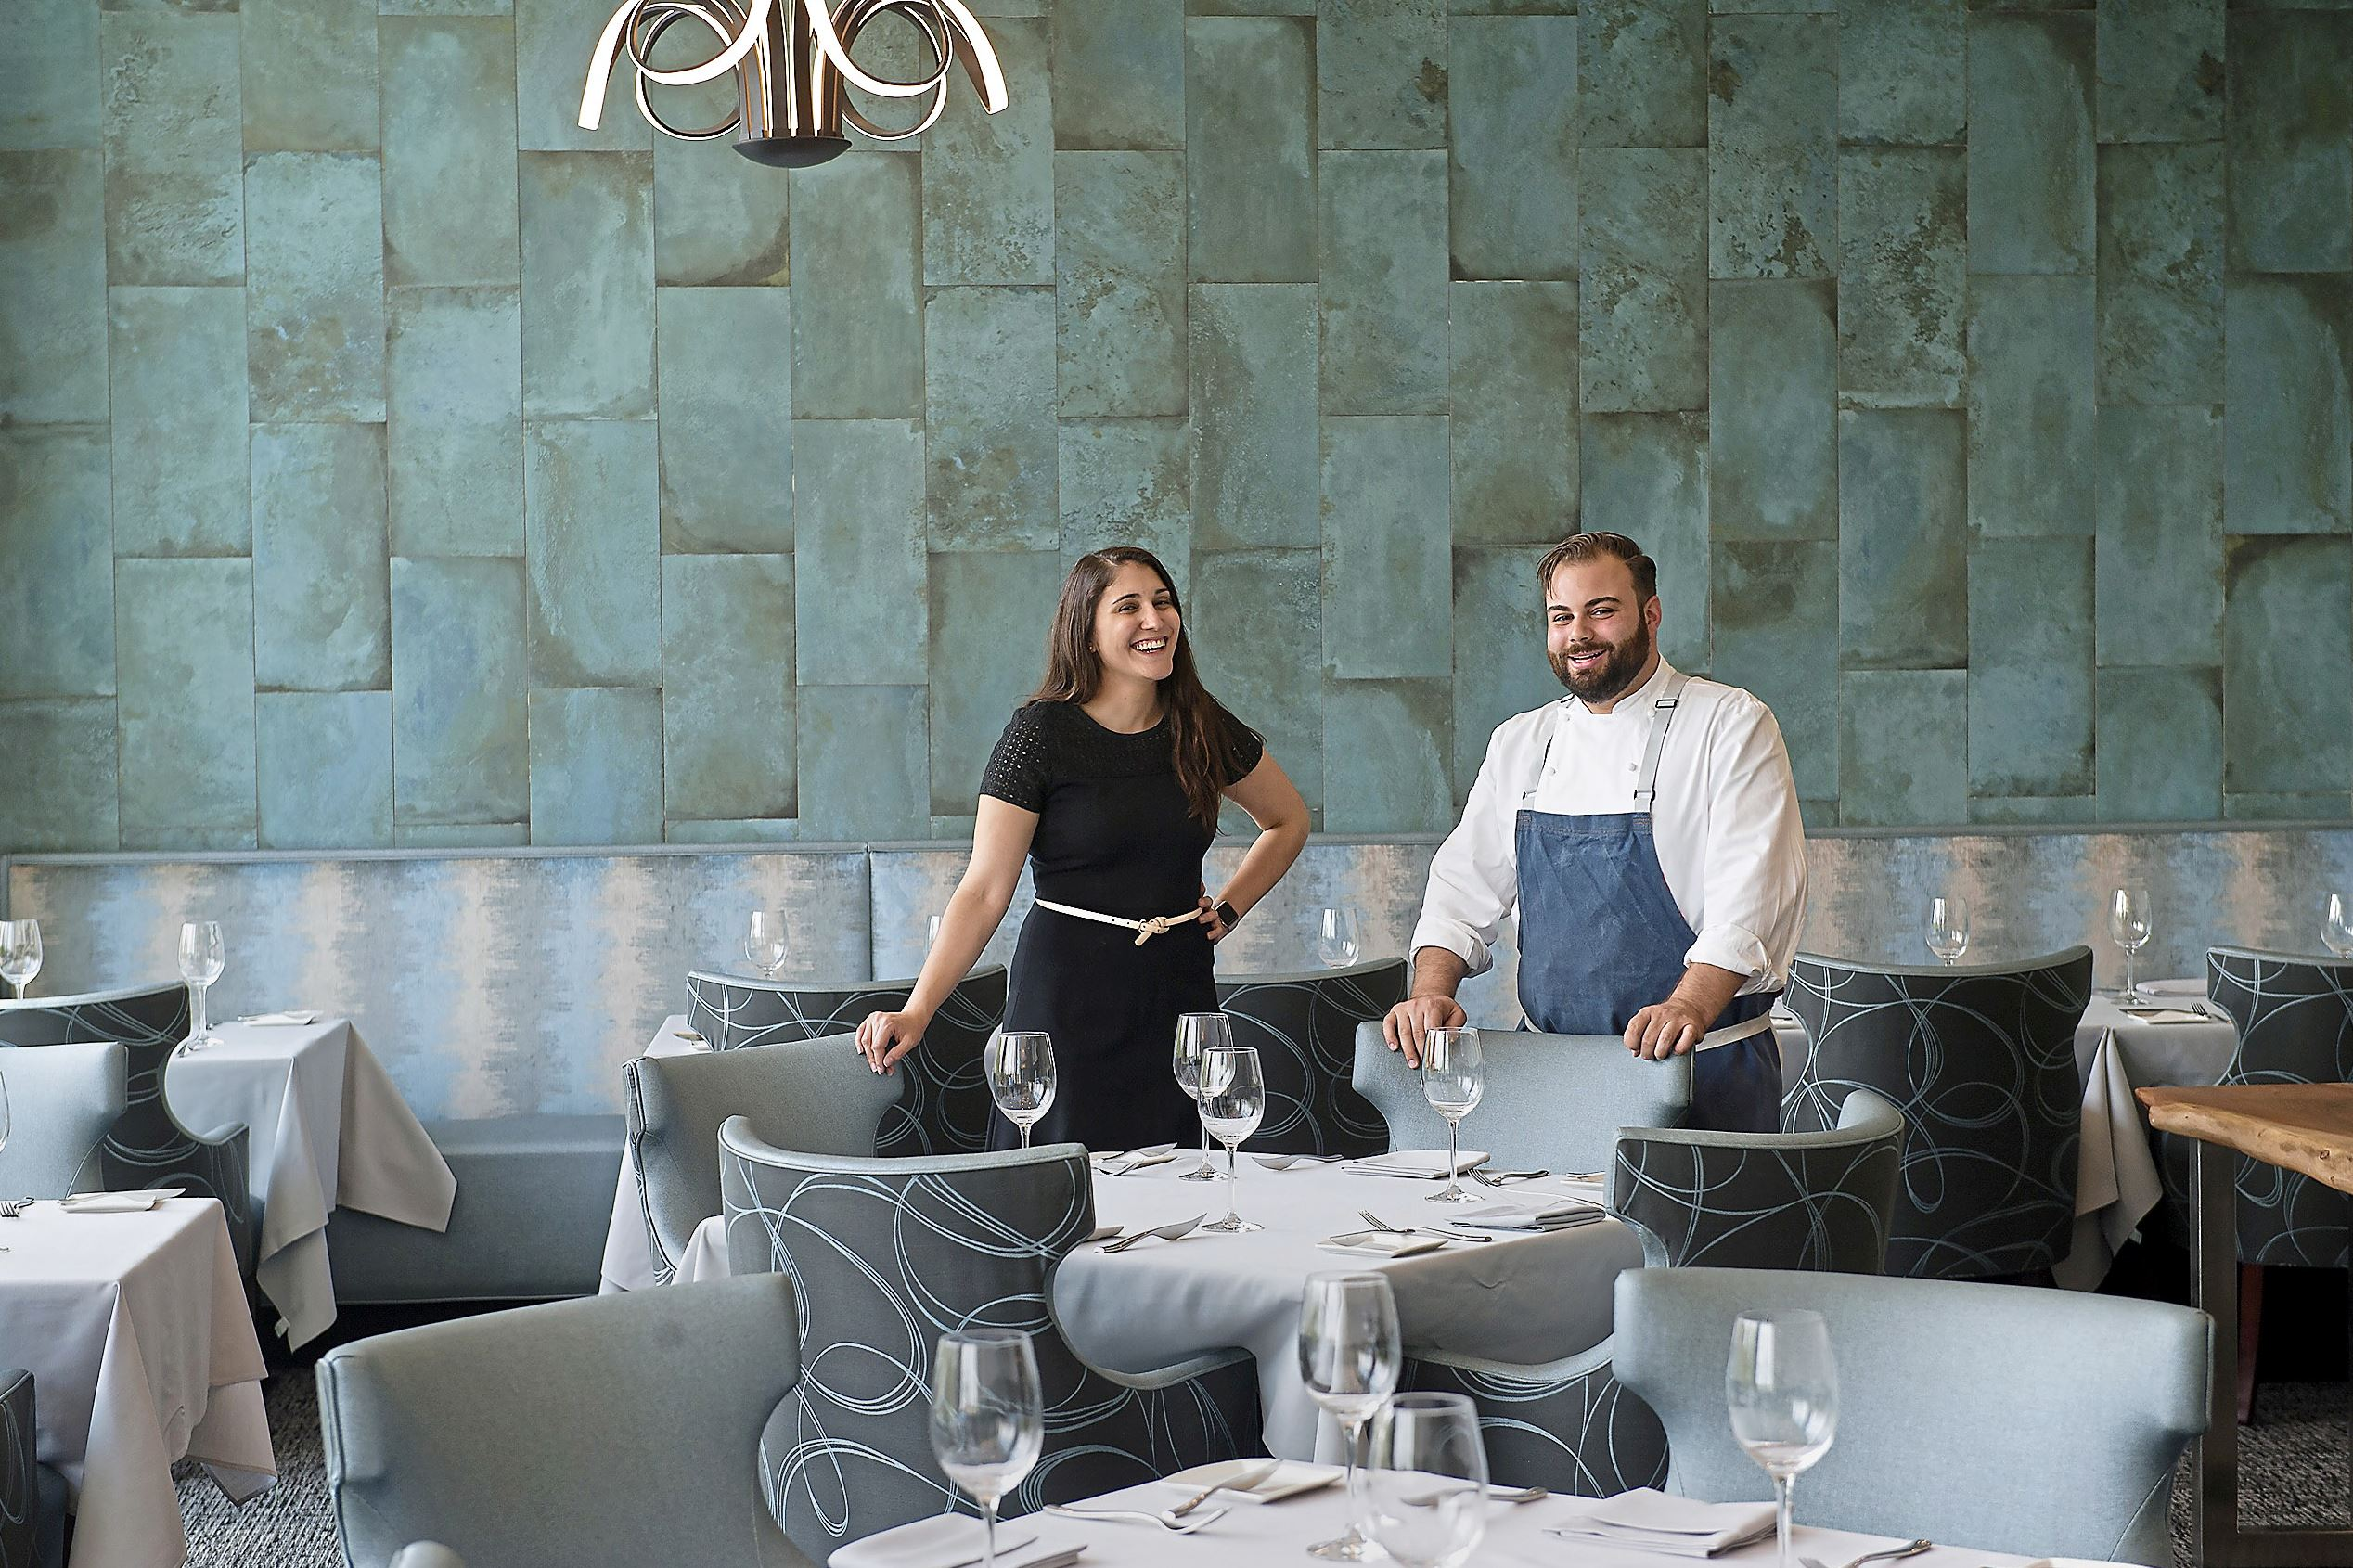 20170811rldTwistedFrenchman03-2 Vanessa Cominsky, assistant general manager and sommelier, and Andrew Garbarino, chef and proprieter, of the Twisted Frenchman in East Liberty.